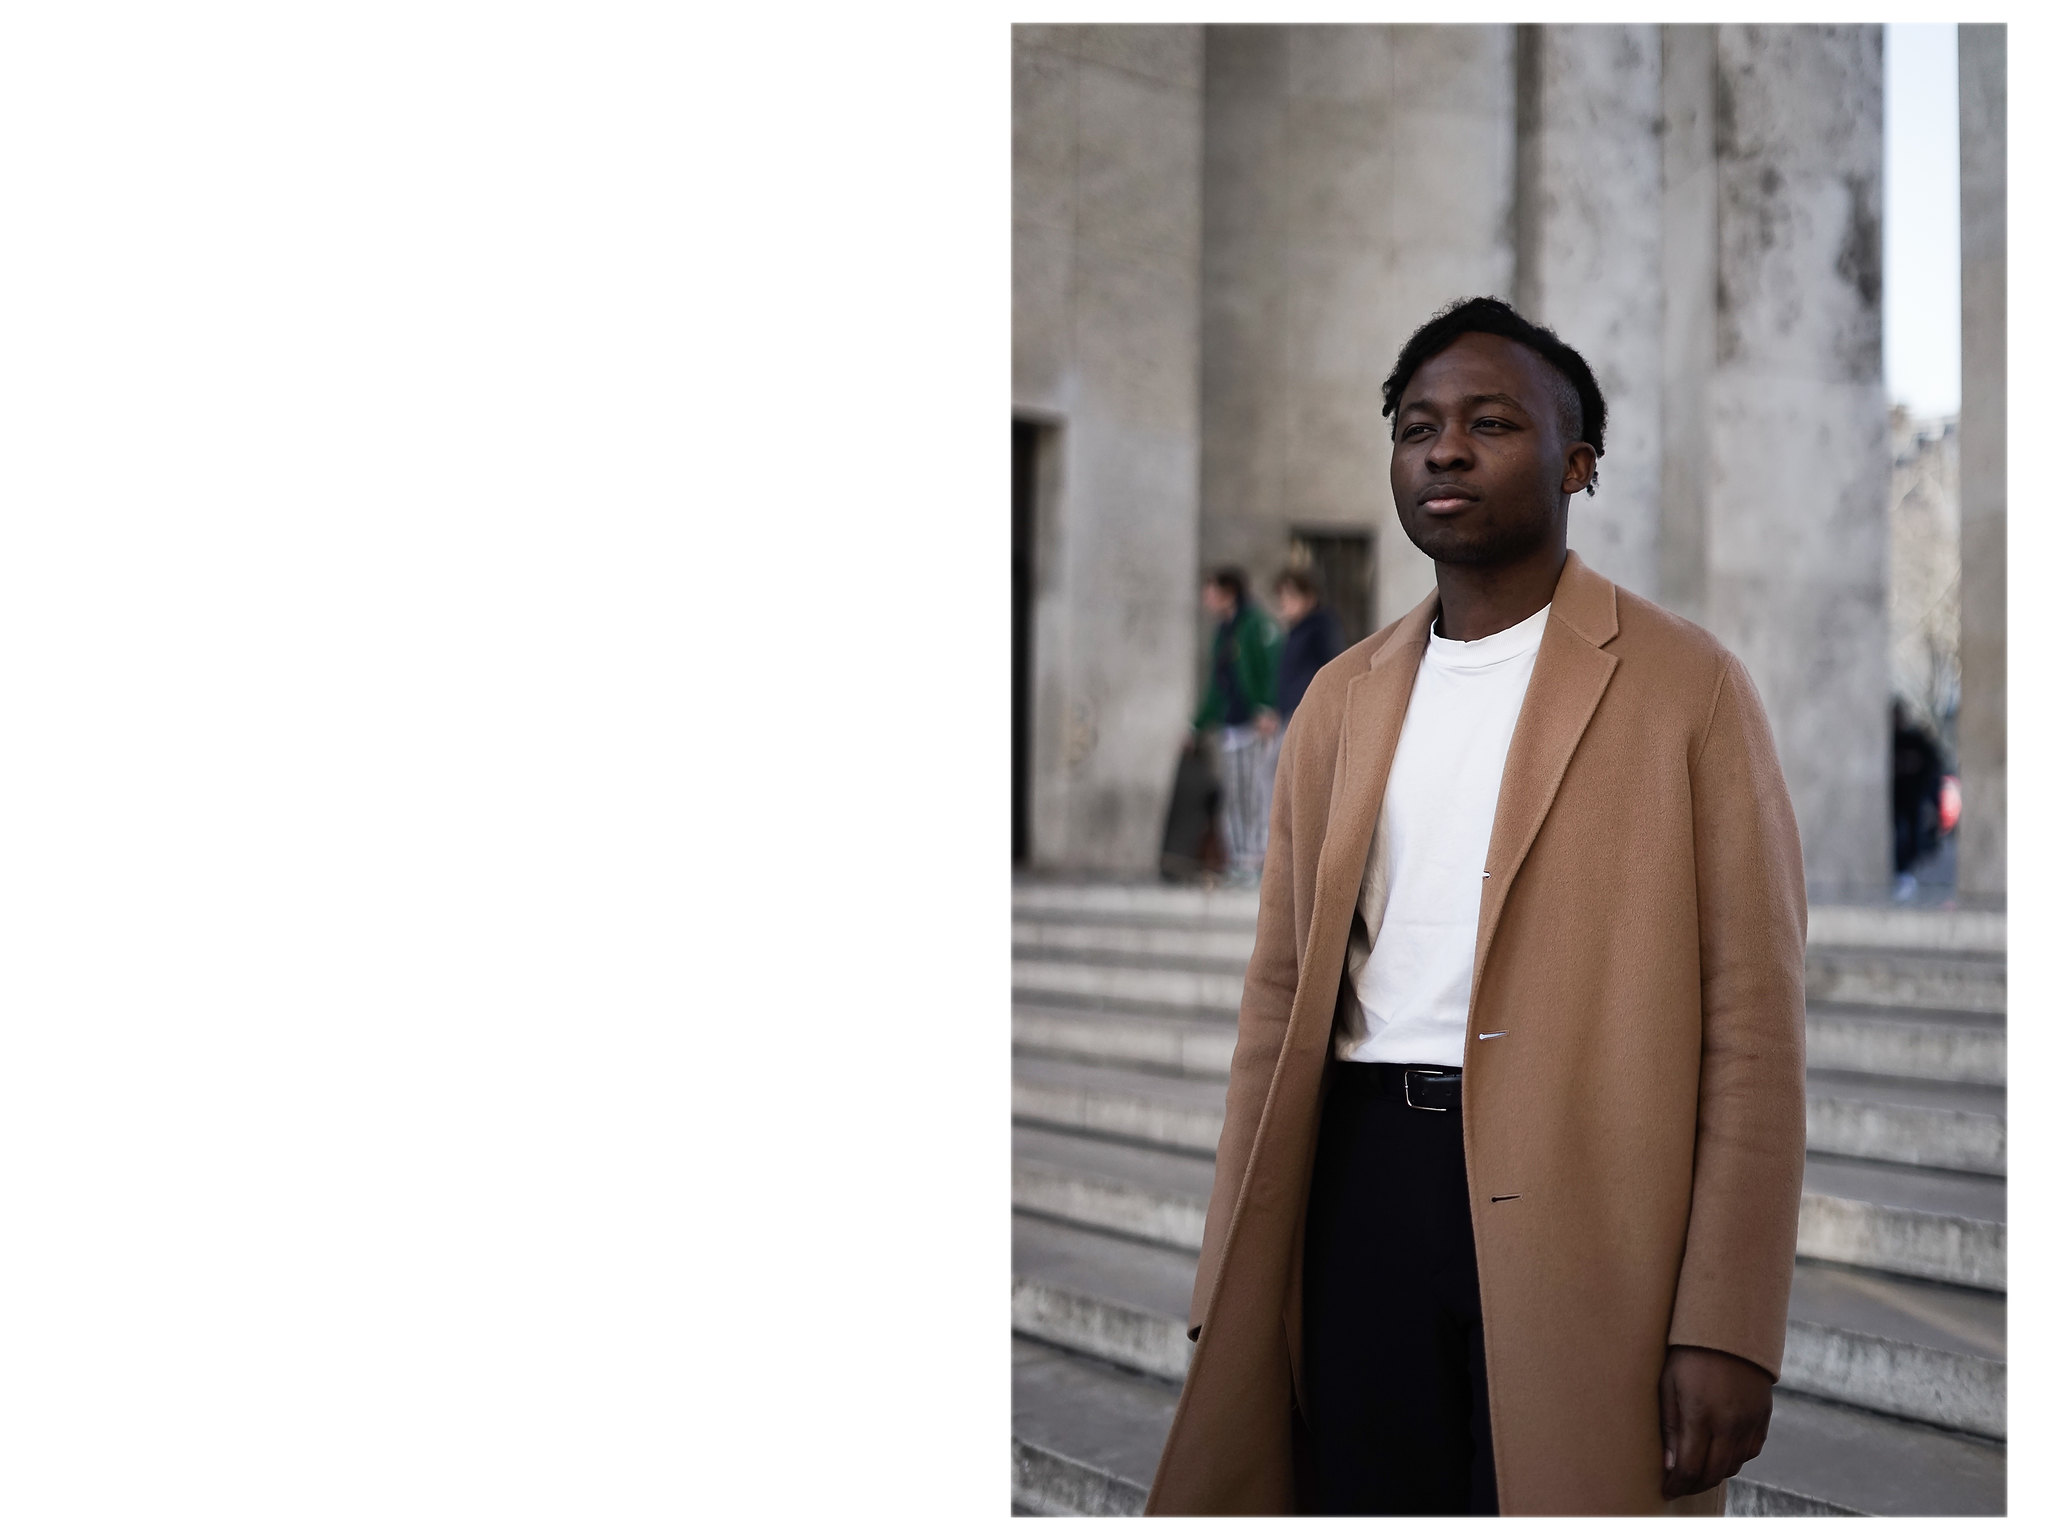 ,palais de tokyo paris mode couple fashion camel coat claudie pierlot acne studios balenciaga